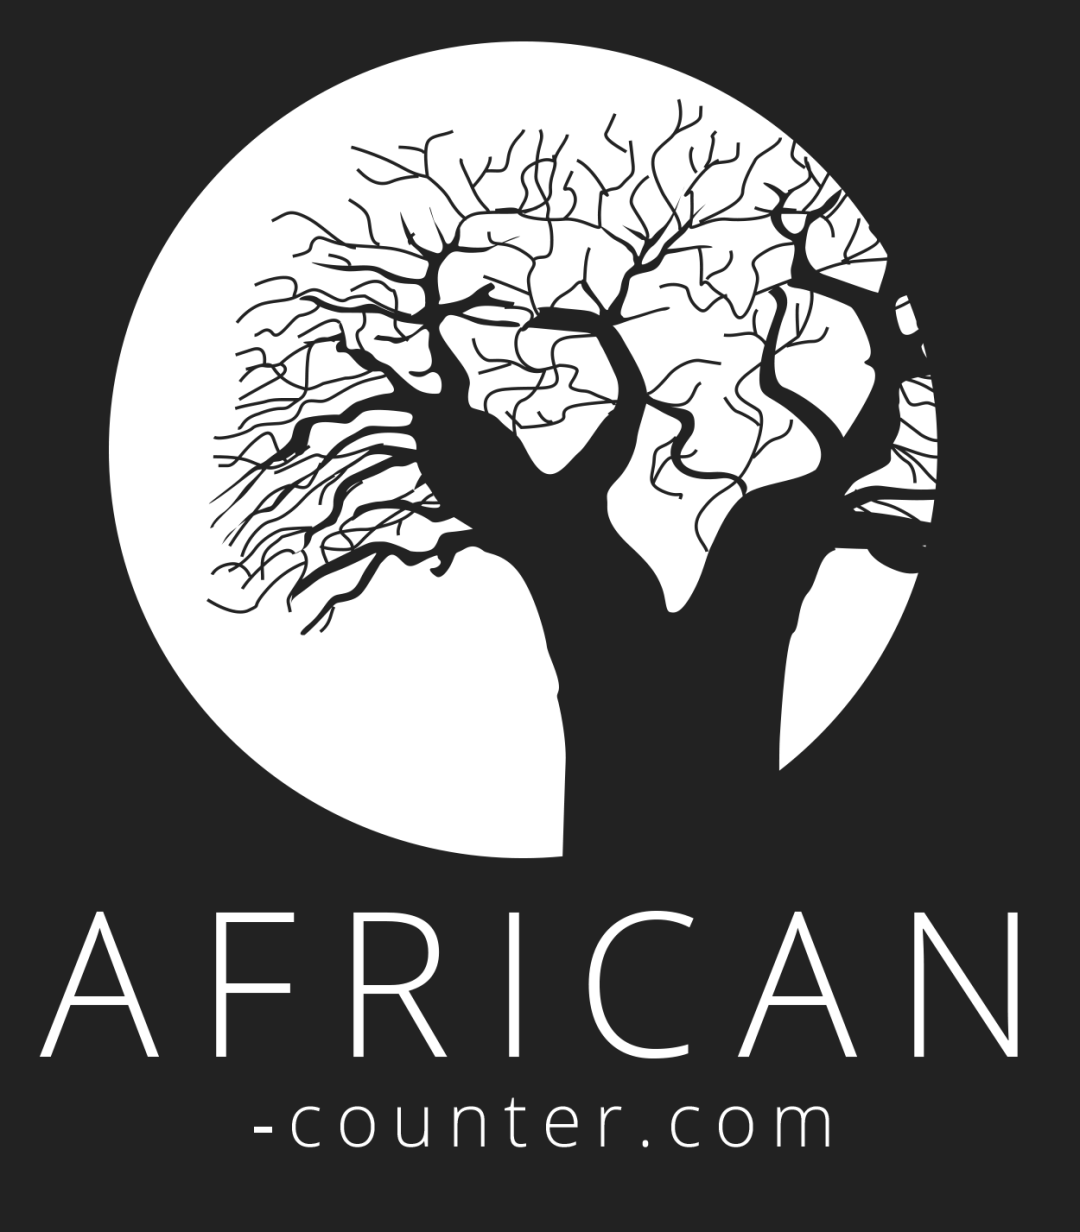 The African Counter Logo